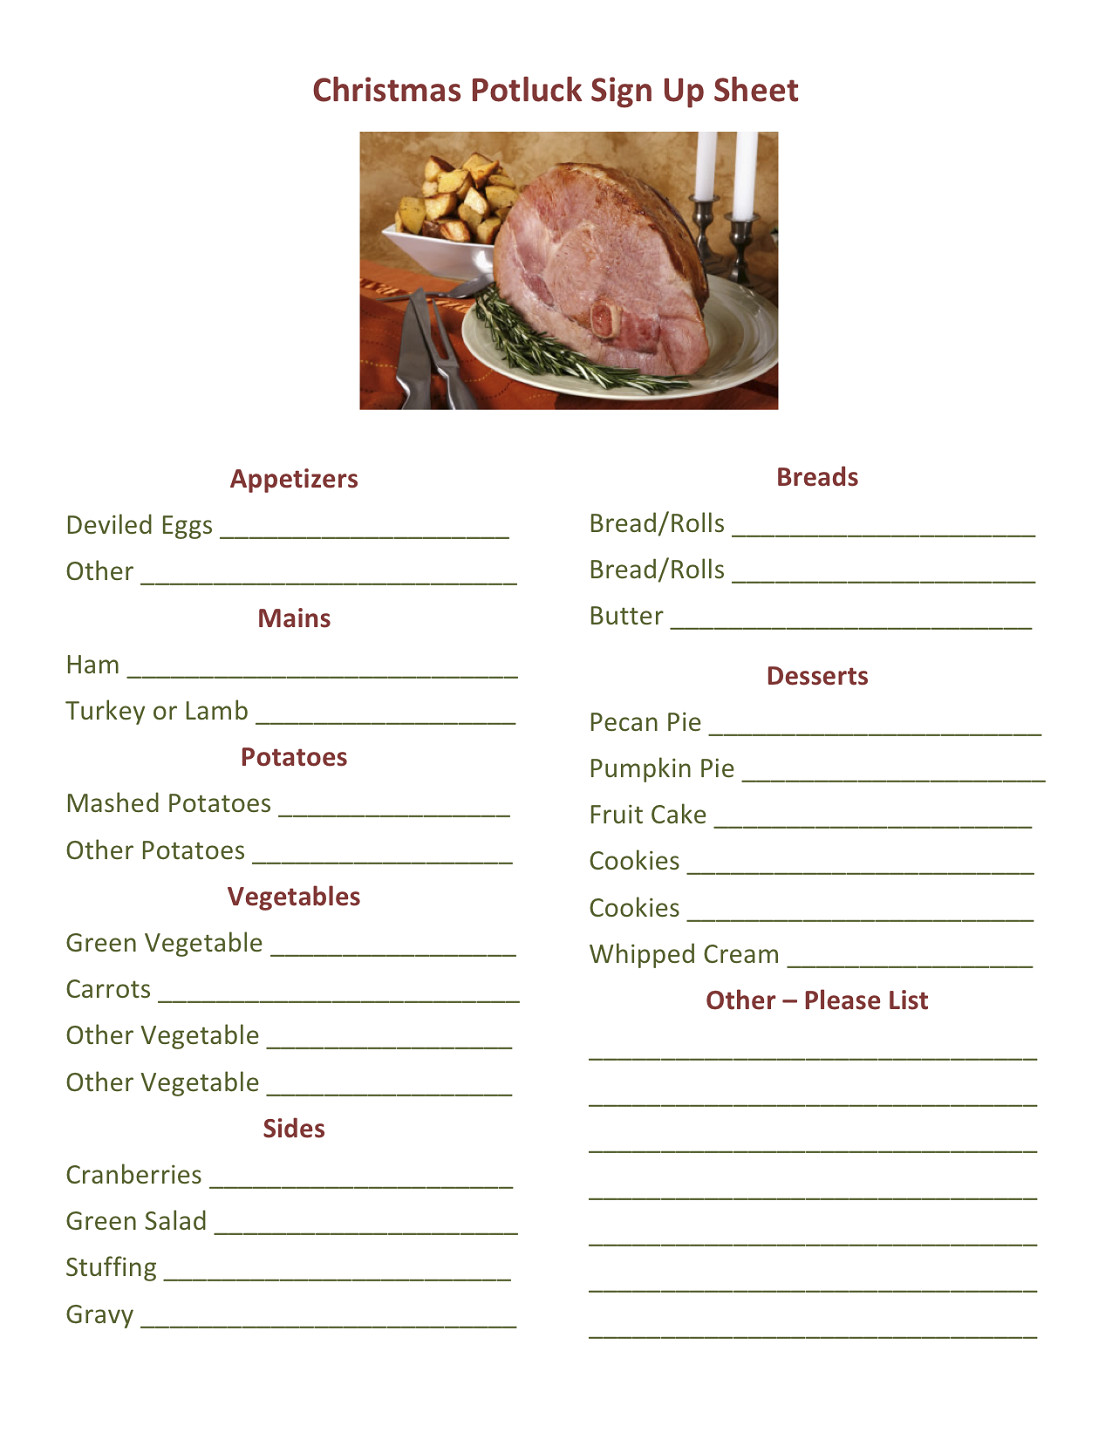 Christmas Potluck Signup Sheet Potluck Dinner Sign Up Sheet Printable